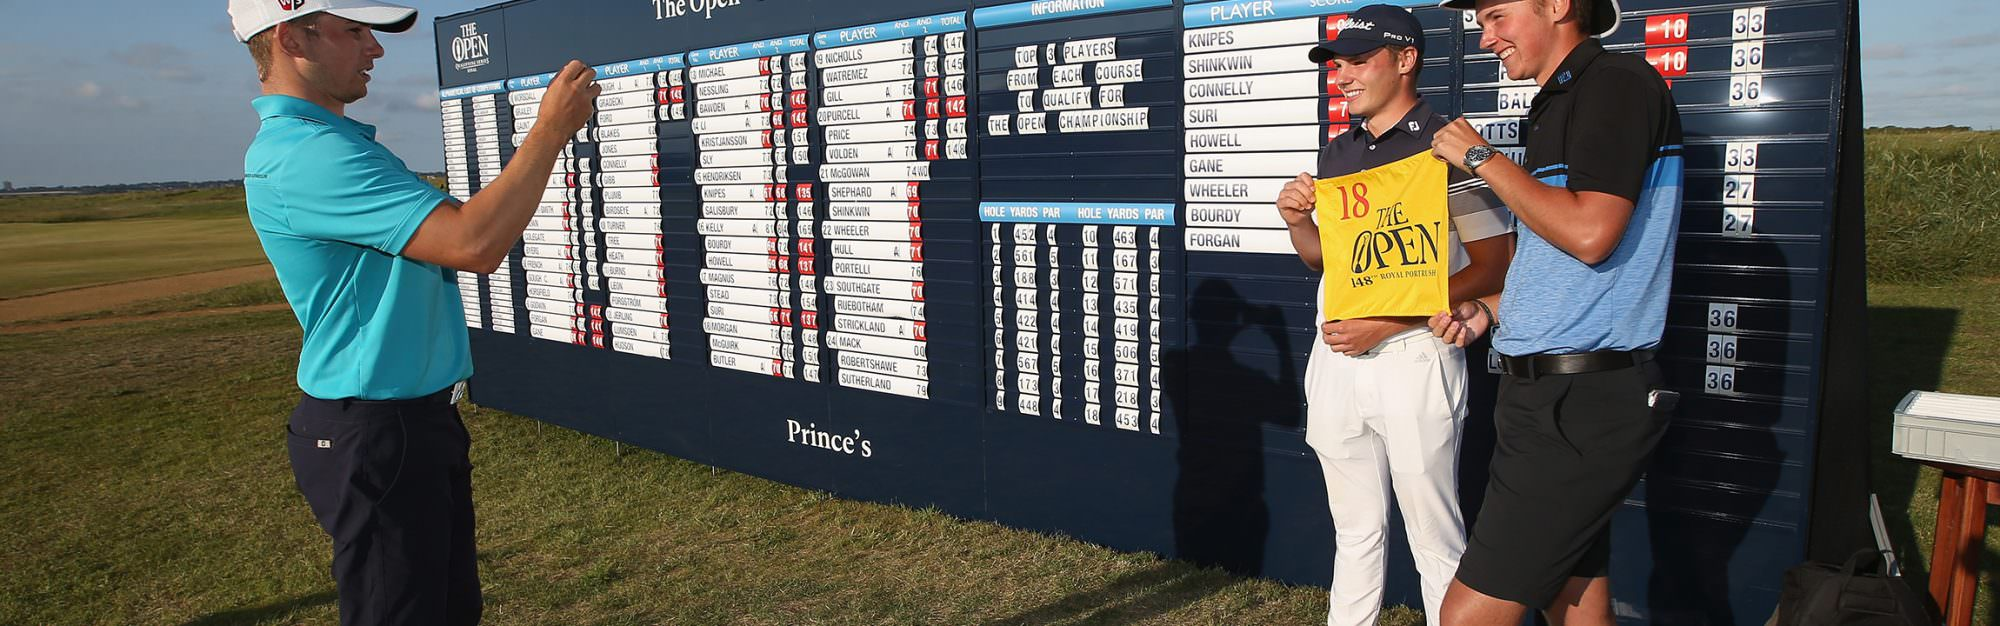 Three amateurs heading to Portrush after Final Qualifying